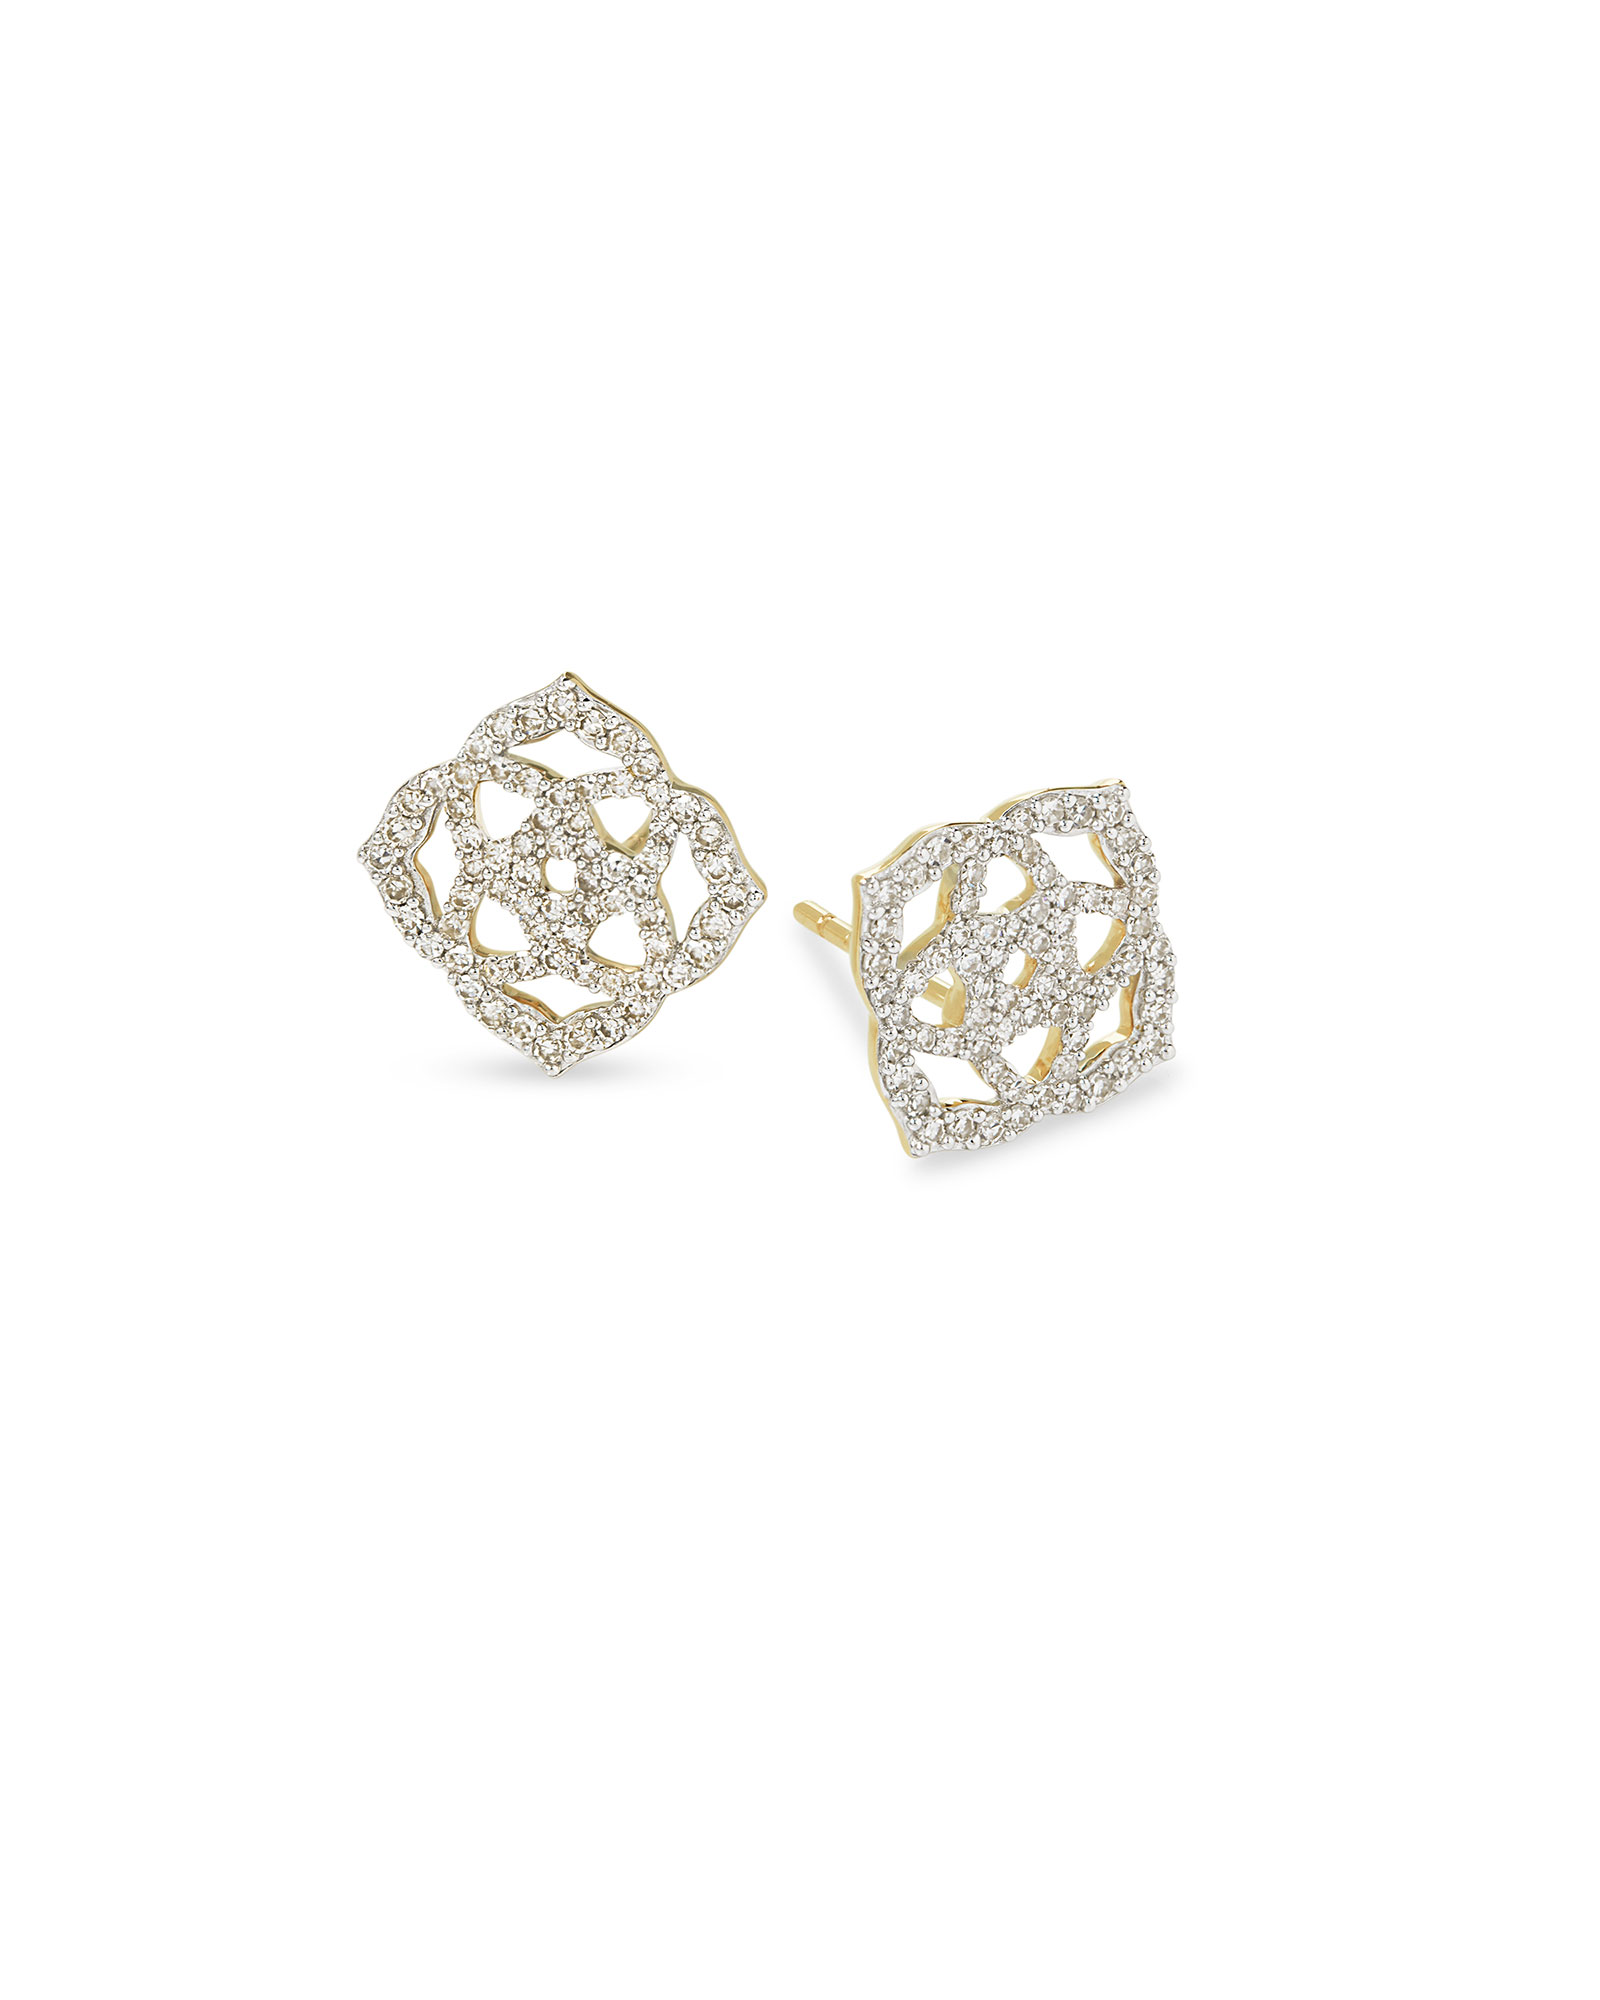 Fleur 14k Yellow Gold Pave Stud Earrings in White Diamond